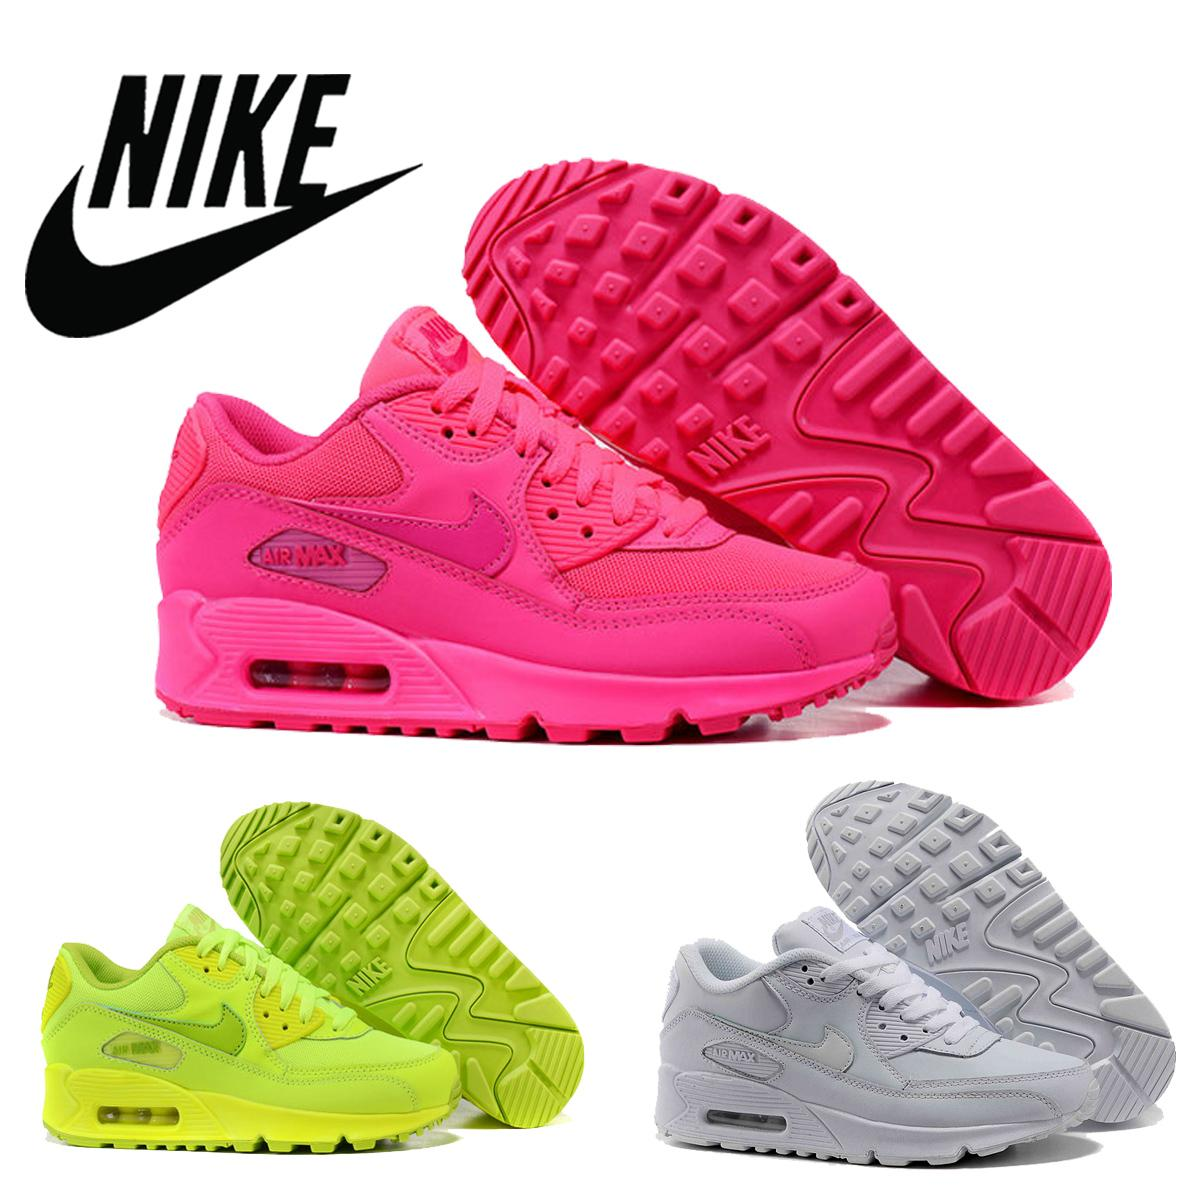 new product 13f1c 14560 Nike Air Max 90 GS Hyper Pink Vivid Pink Men Women Runing Shoes,Original  Quality Nike Air Max 90 GS Hyperfuse Premium Runing Shoes New Running  Spikes Track ...